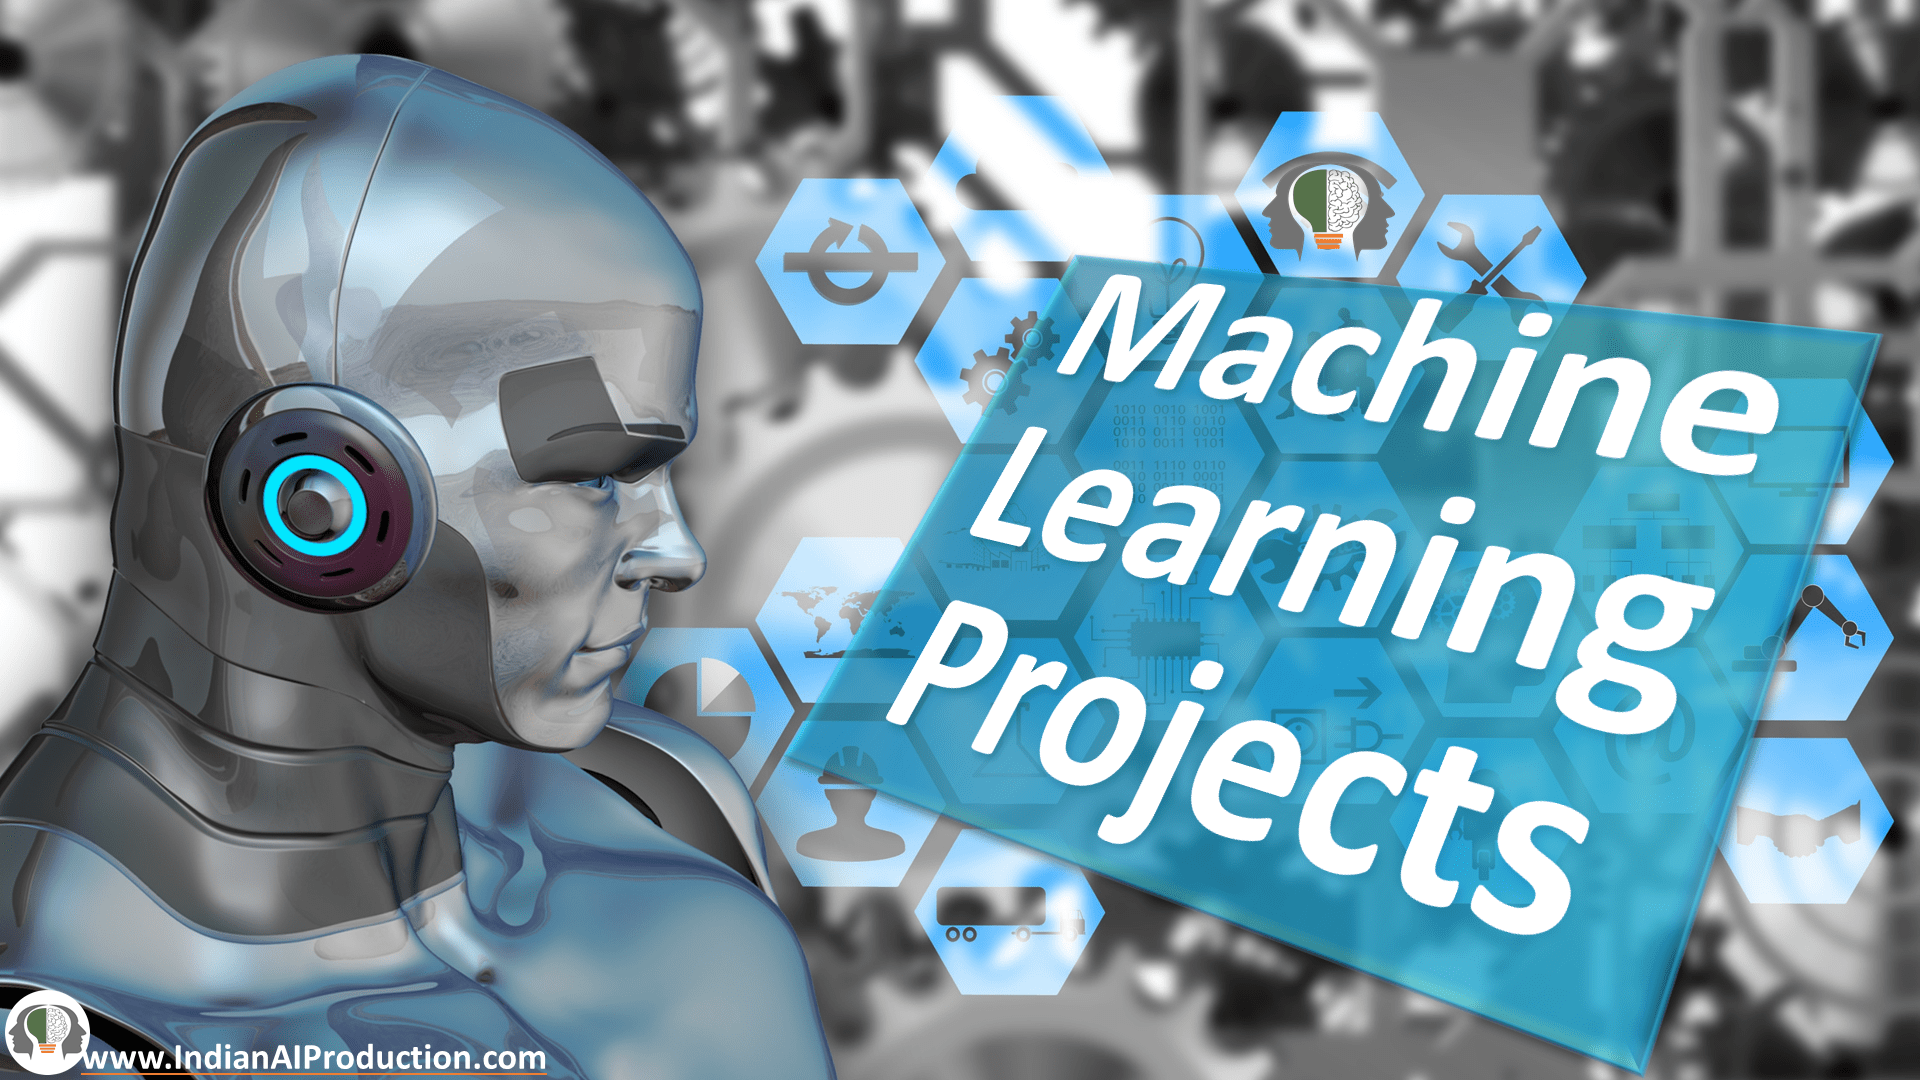 End to End Machine Learning Projects